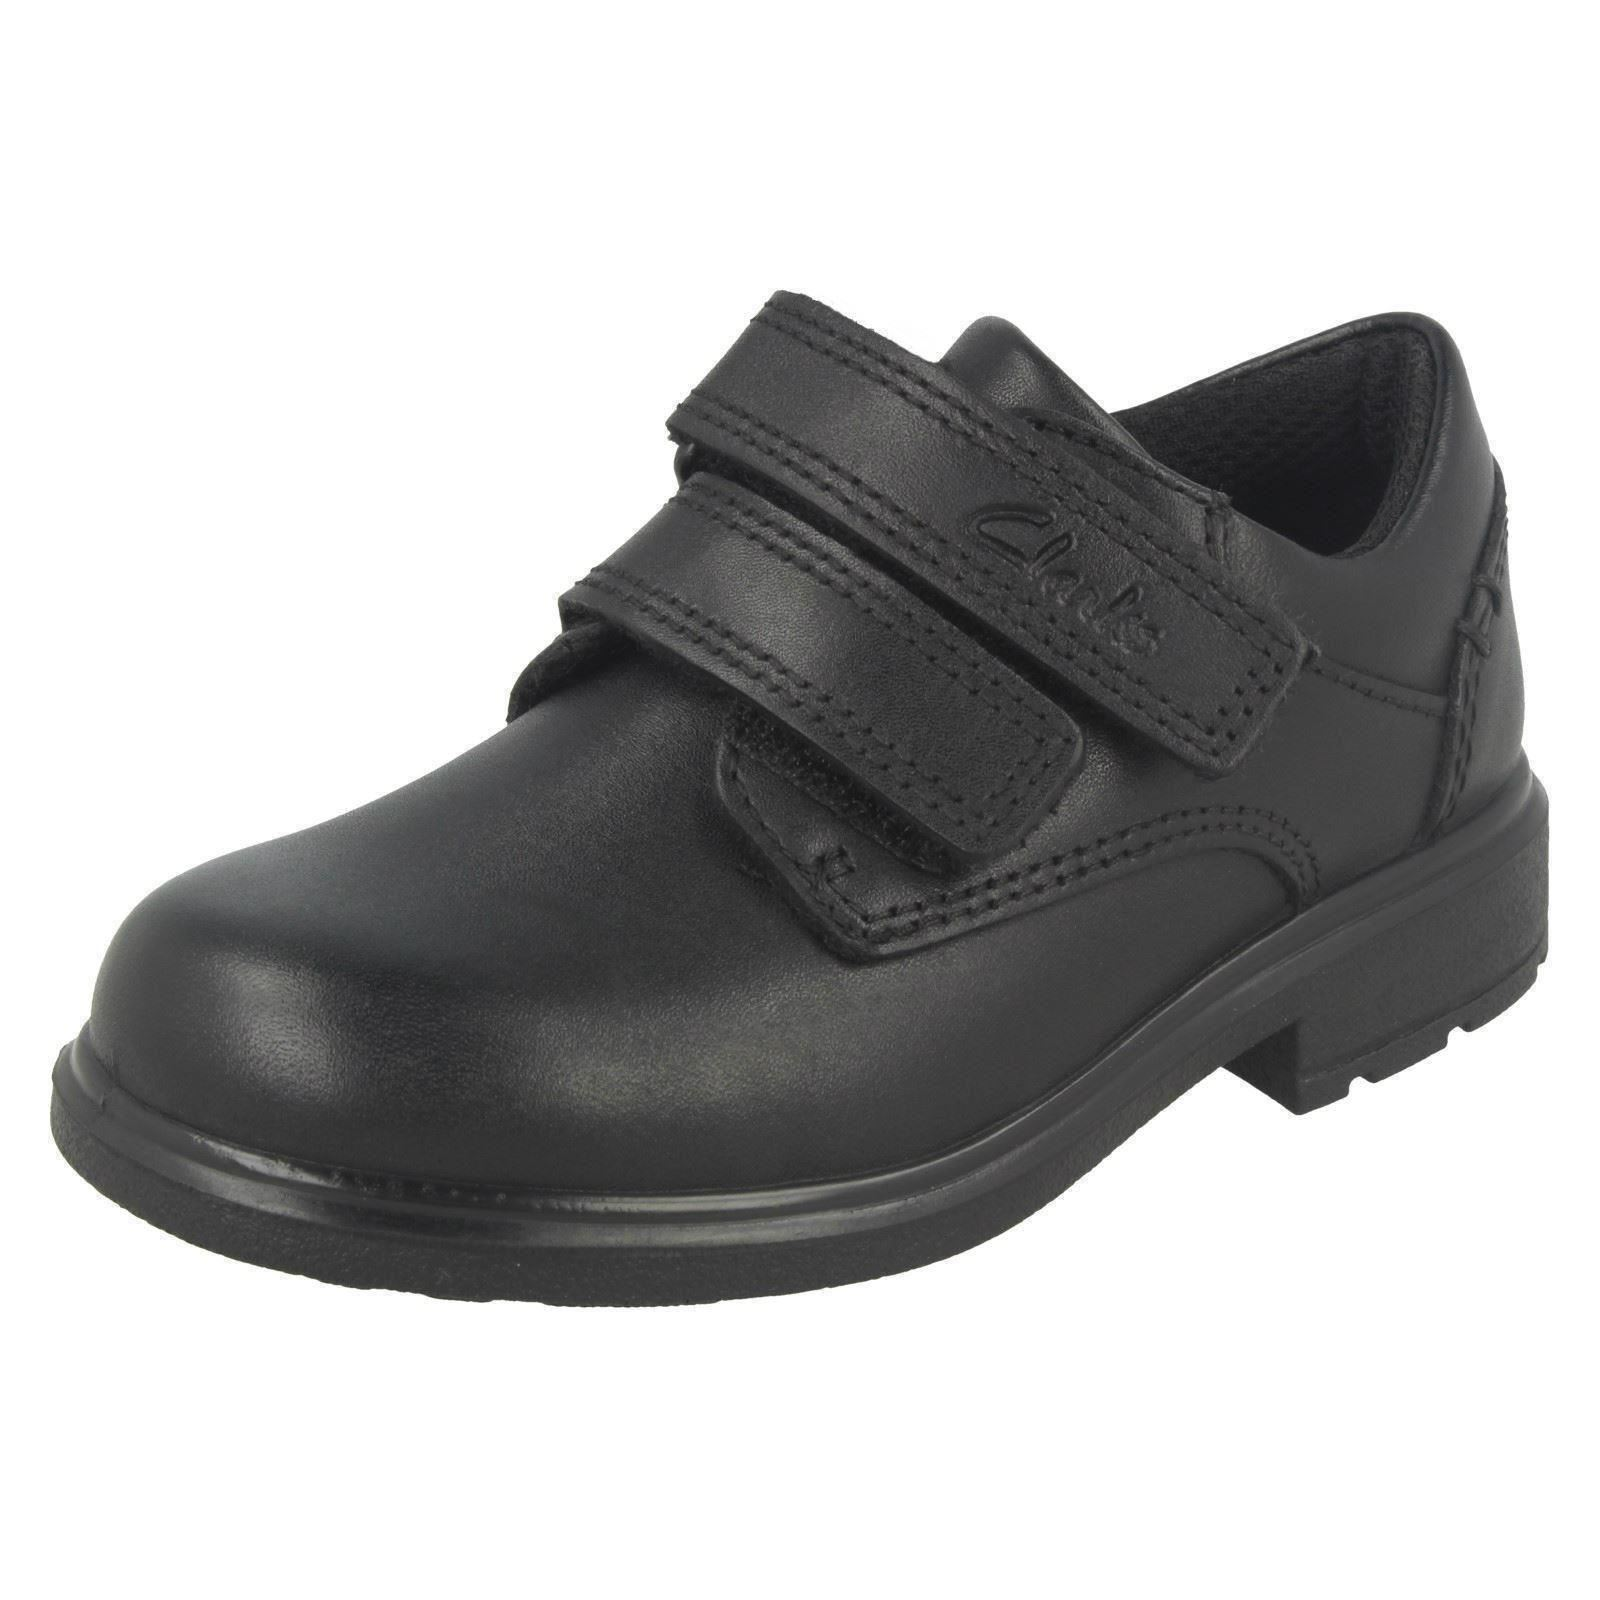 Chicos Clarks Zapatos Escolares formal/Remi ritmo